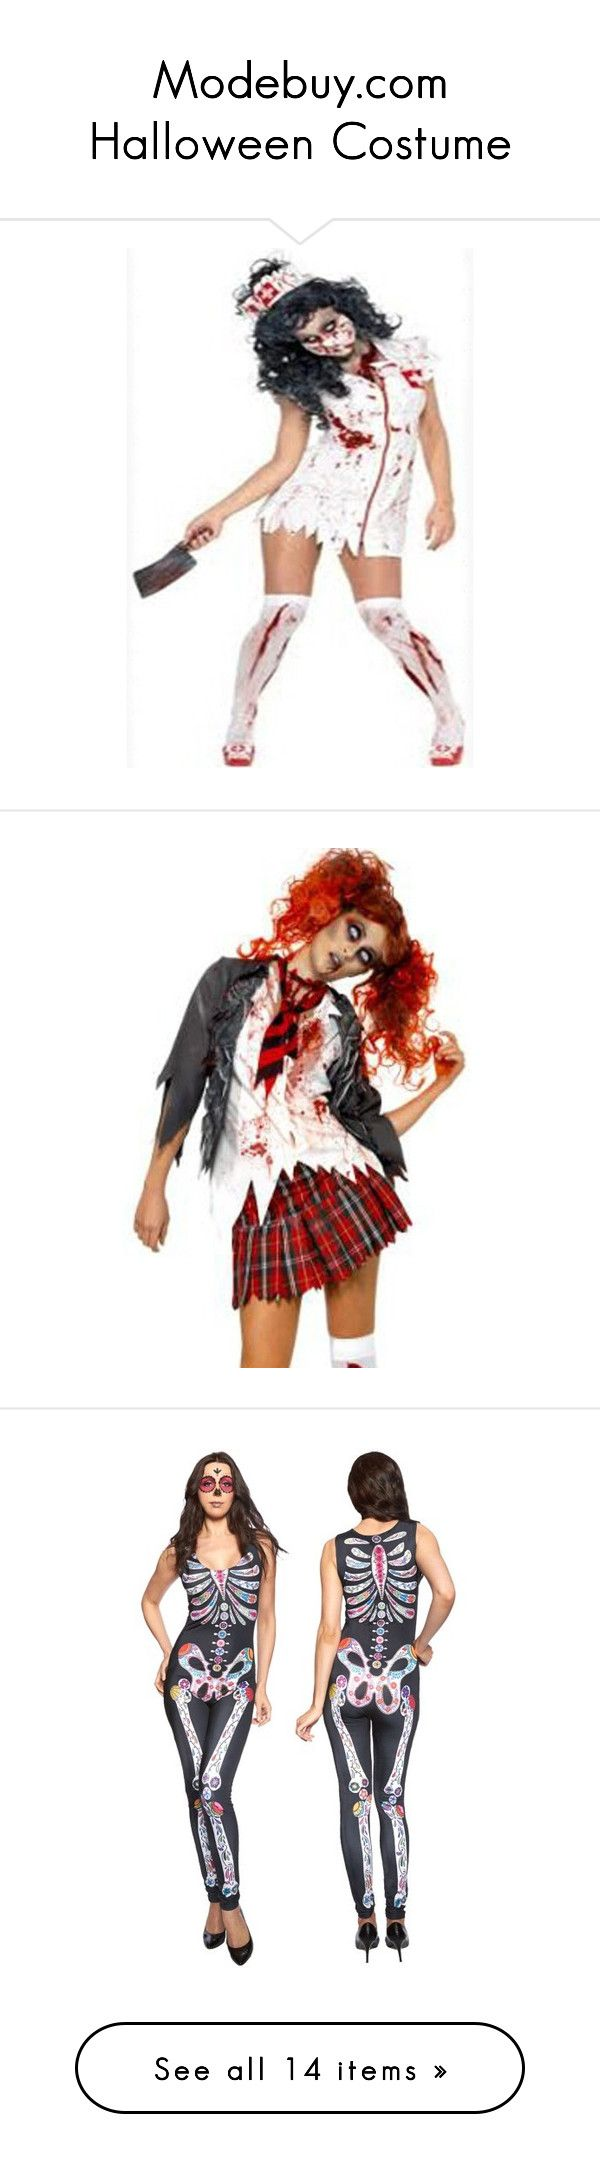 """""""Modebuy.com Halloween Costume"""" by modebuy ❤ liked on Polyvore featuring modebuy, costumes, adult halloween costumes, zombie nurse costume, adult zombie costume, living dead costume, adult nurse costume, zombie costume, zombie school girl and holiday costumes"""